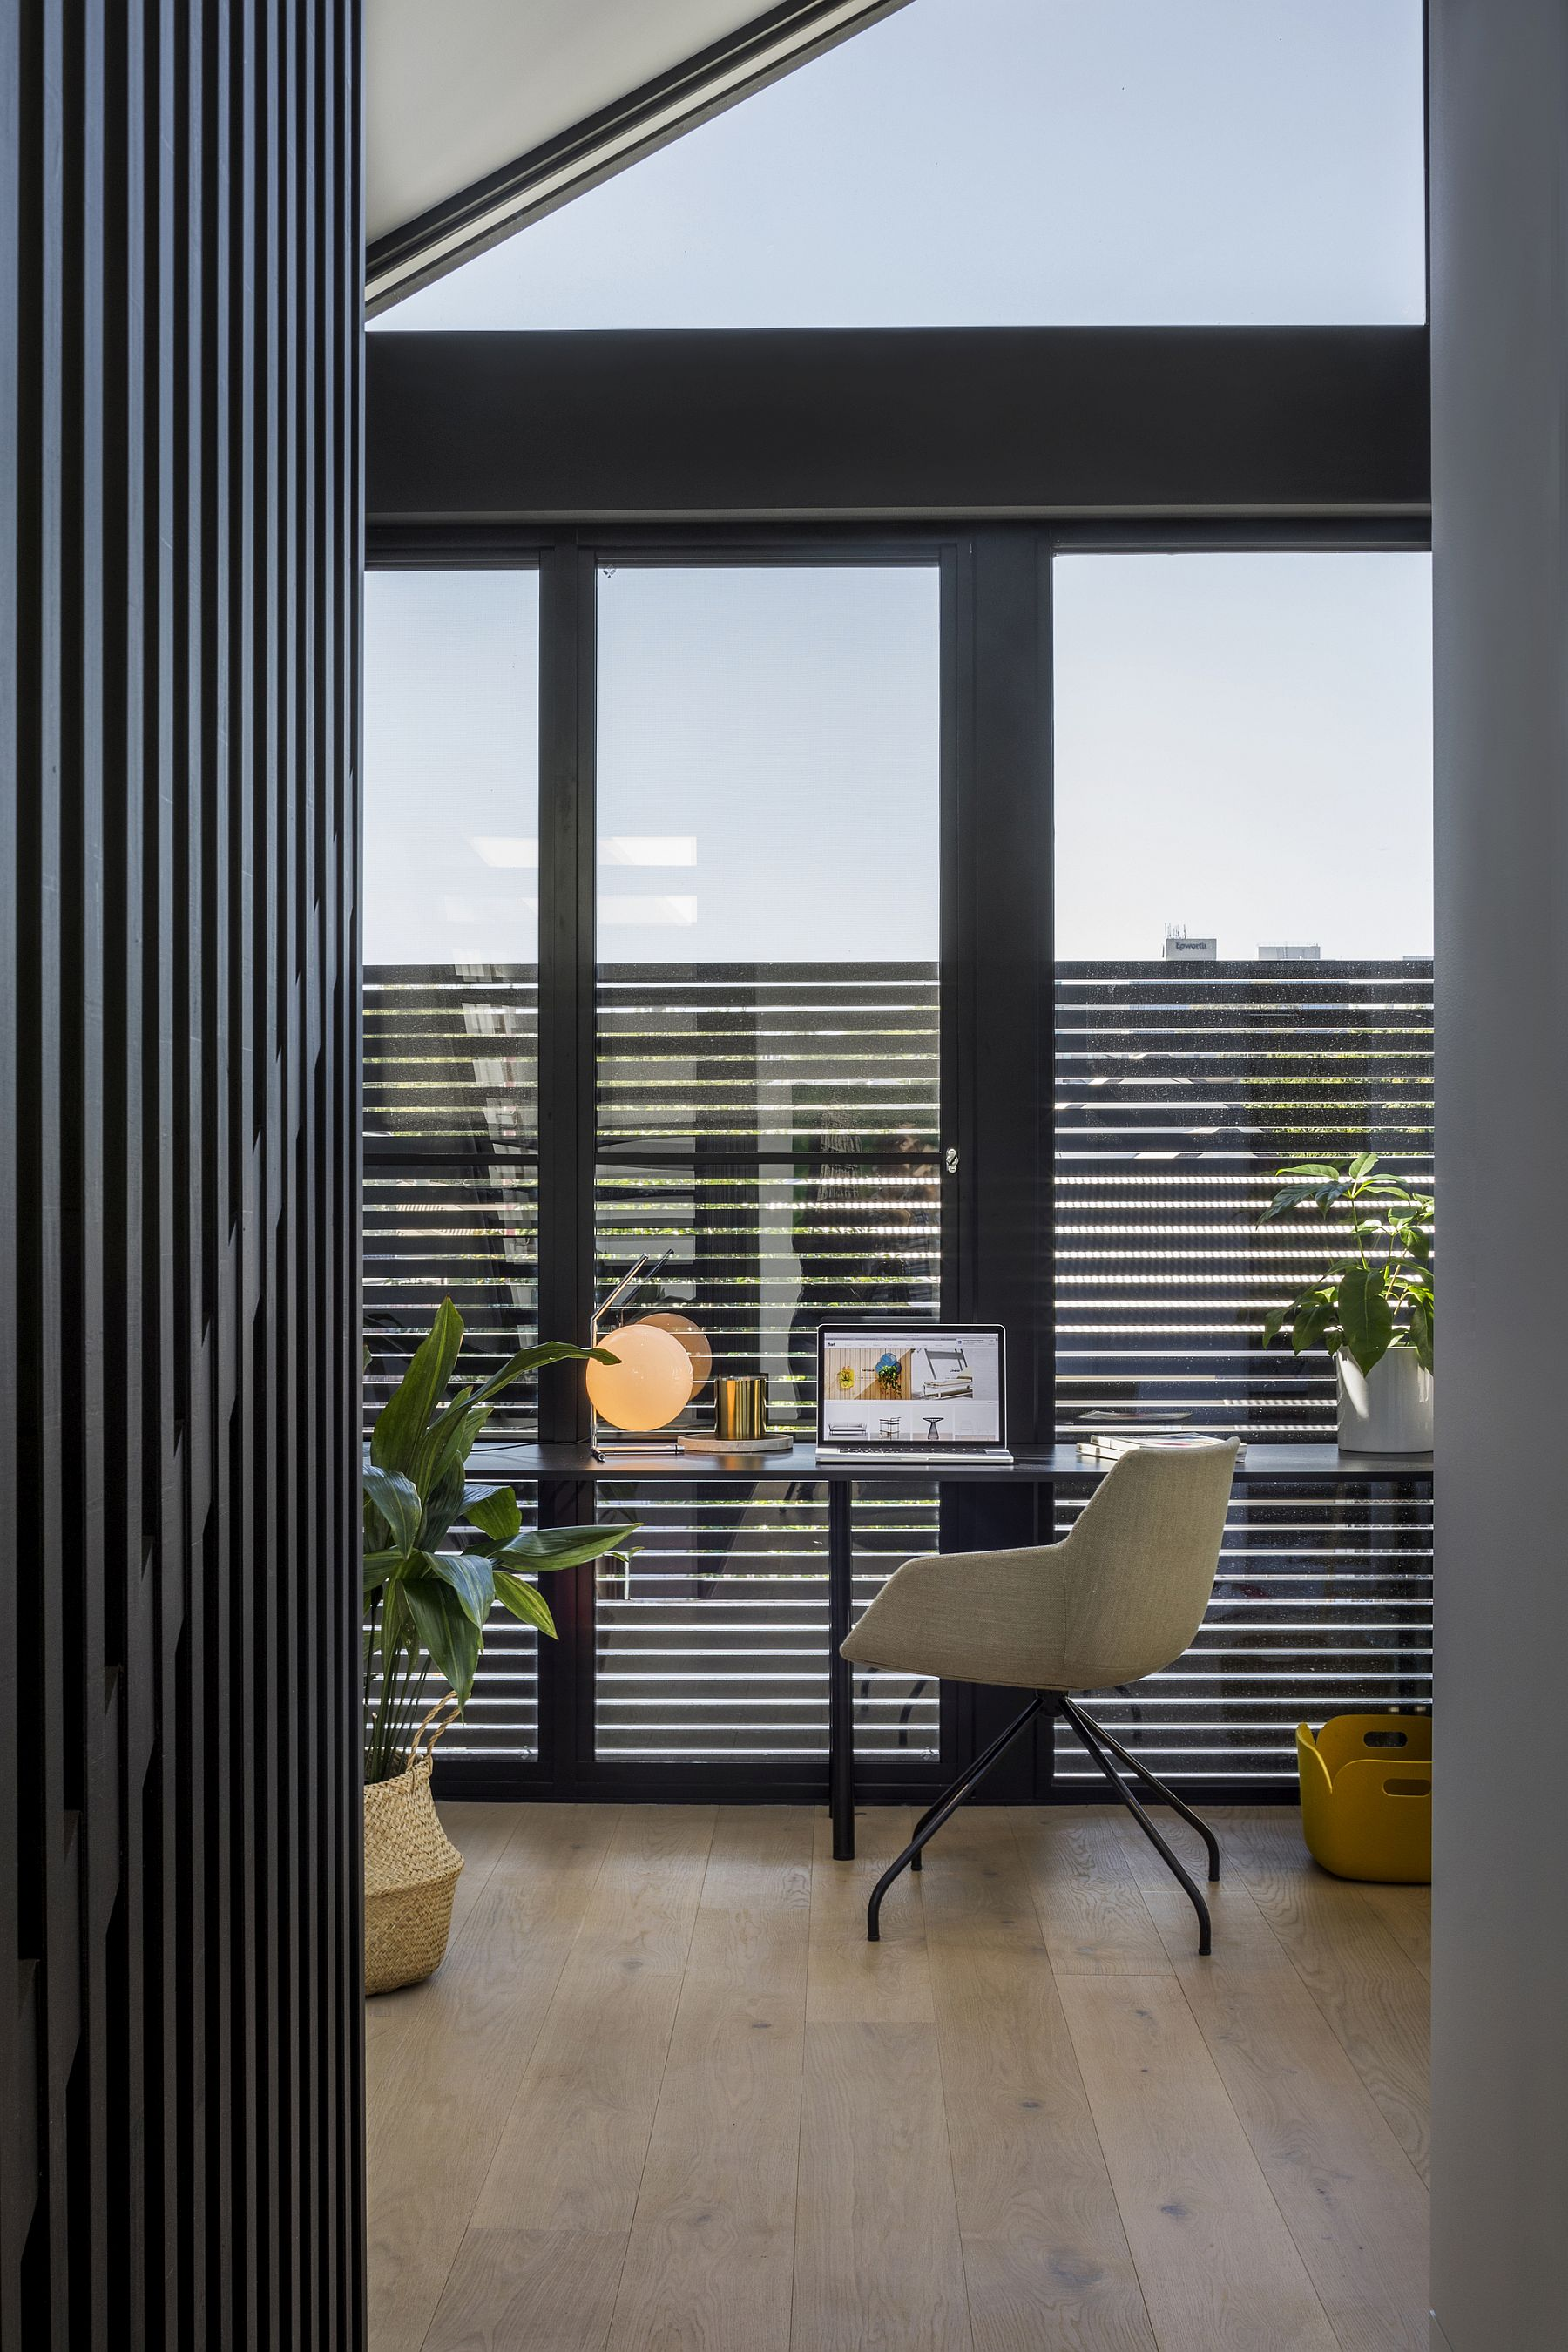 Minimal black and white interior of the T2 residence